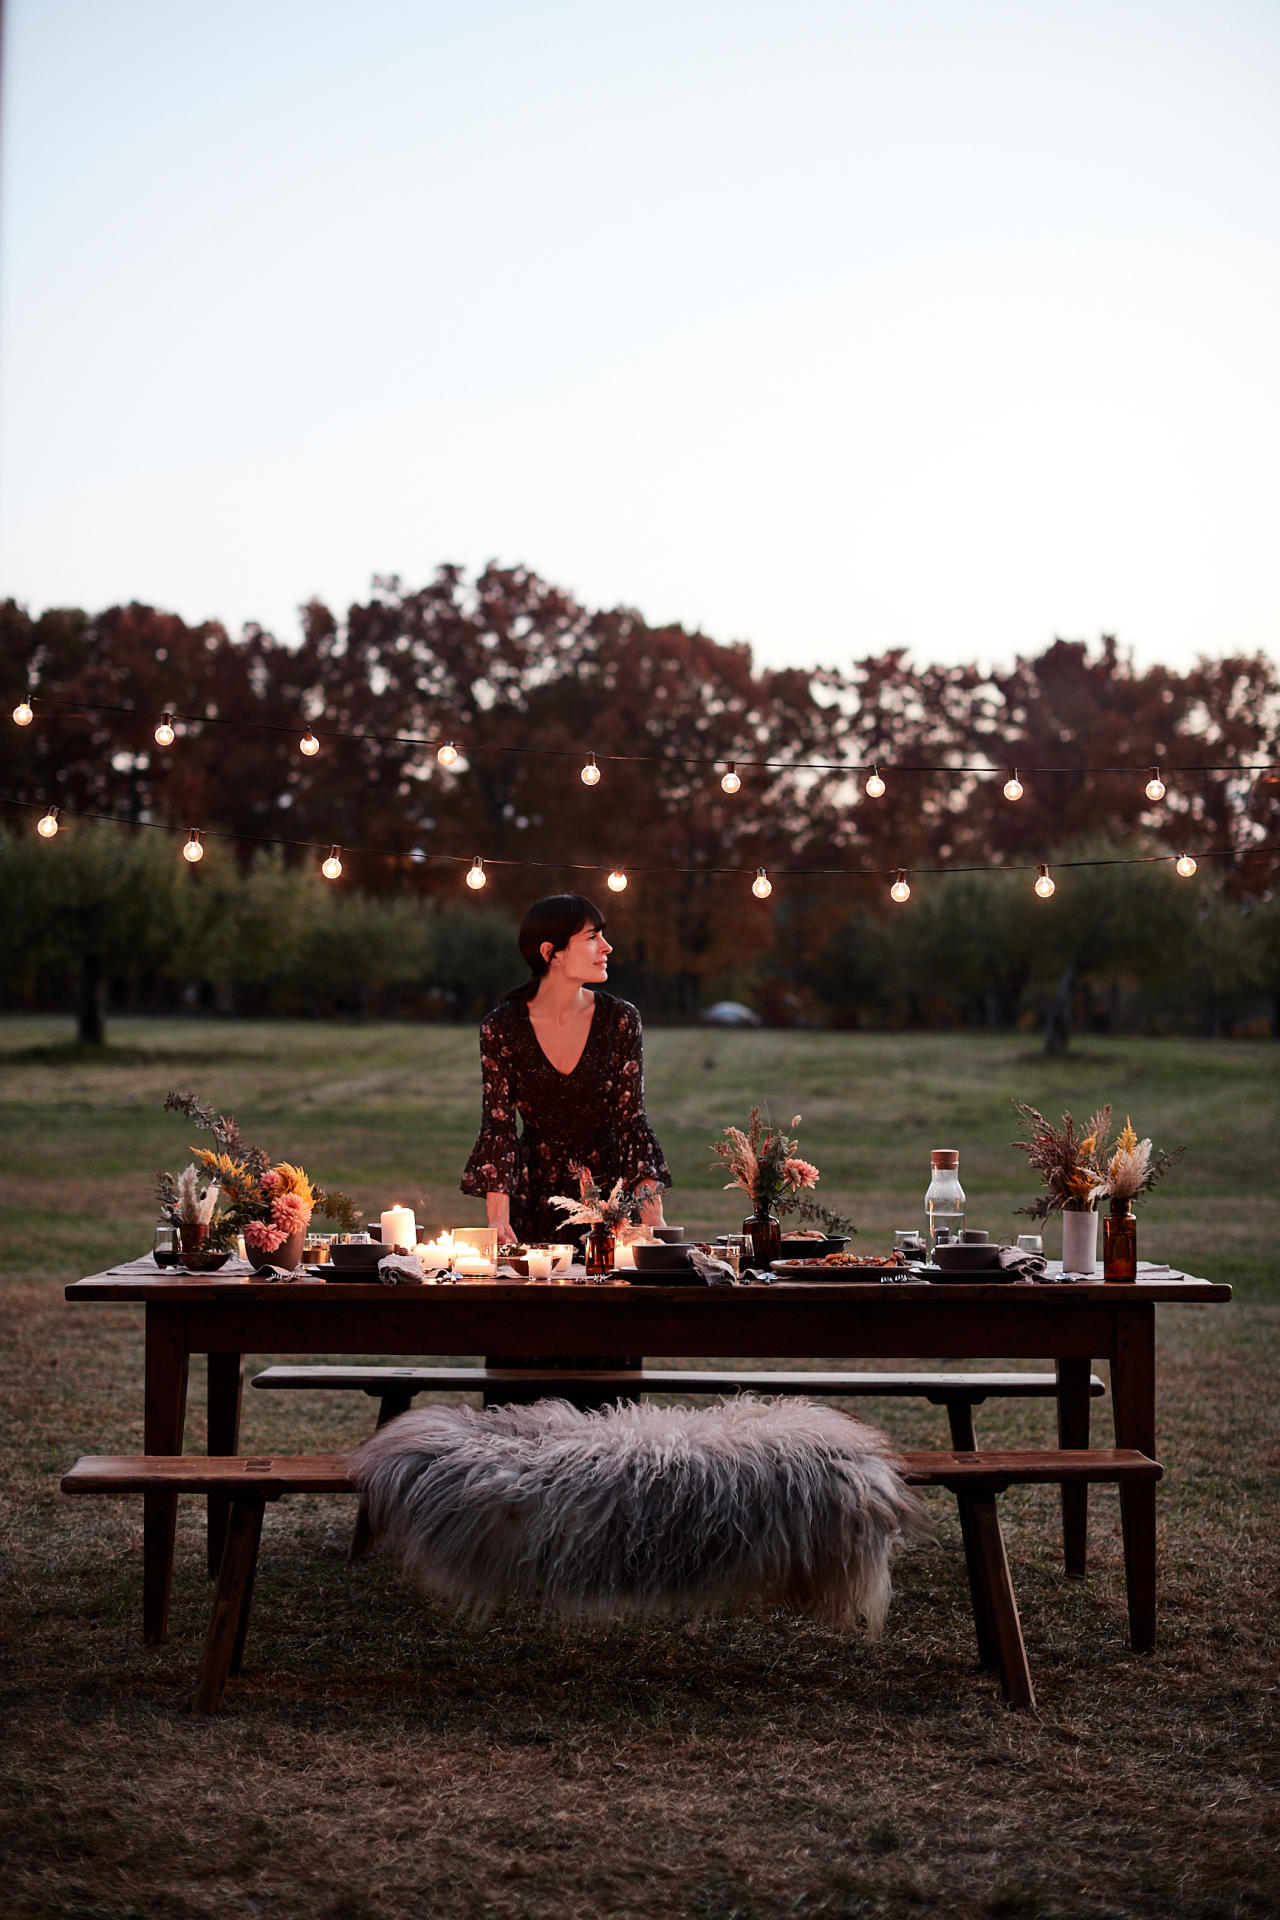 Athena Calderone on Food_Athena Outside Table Setting 0326